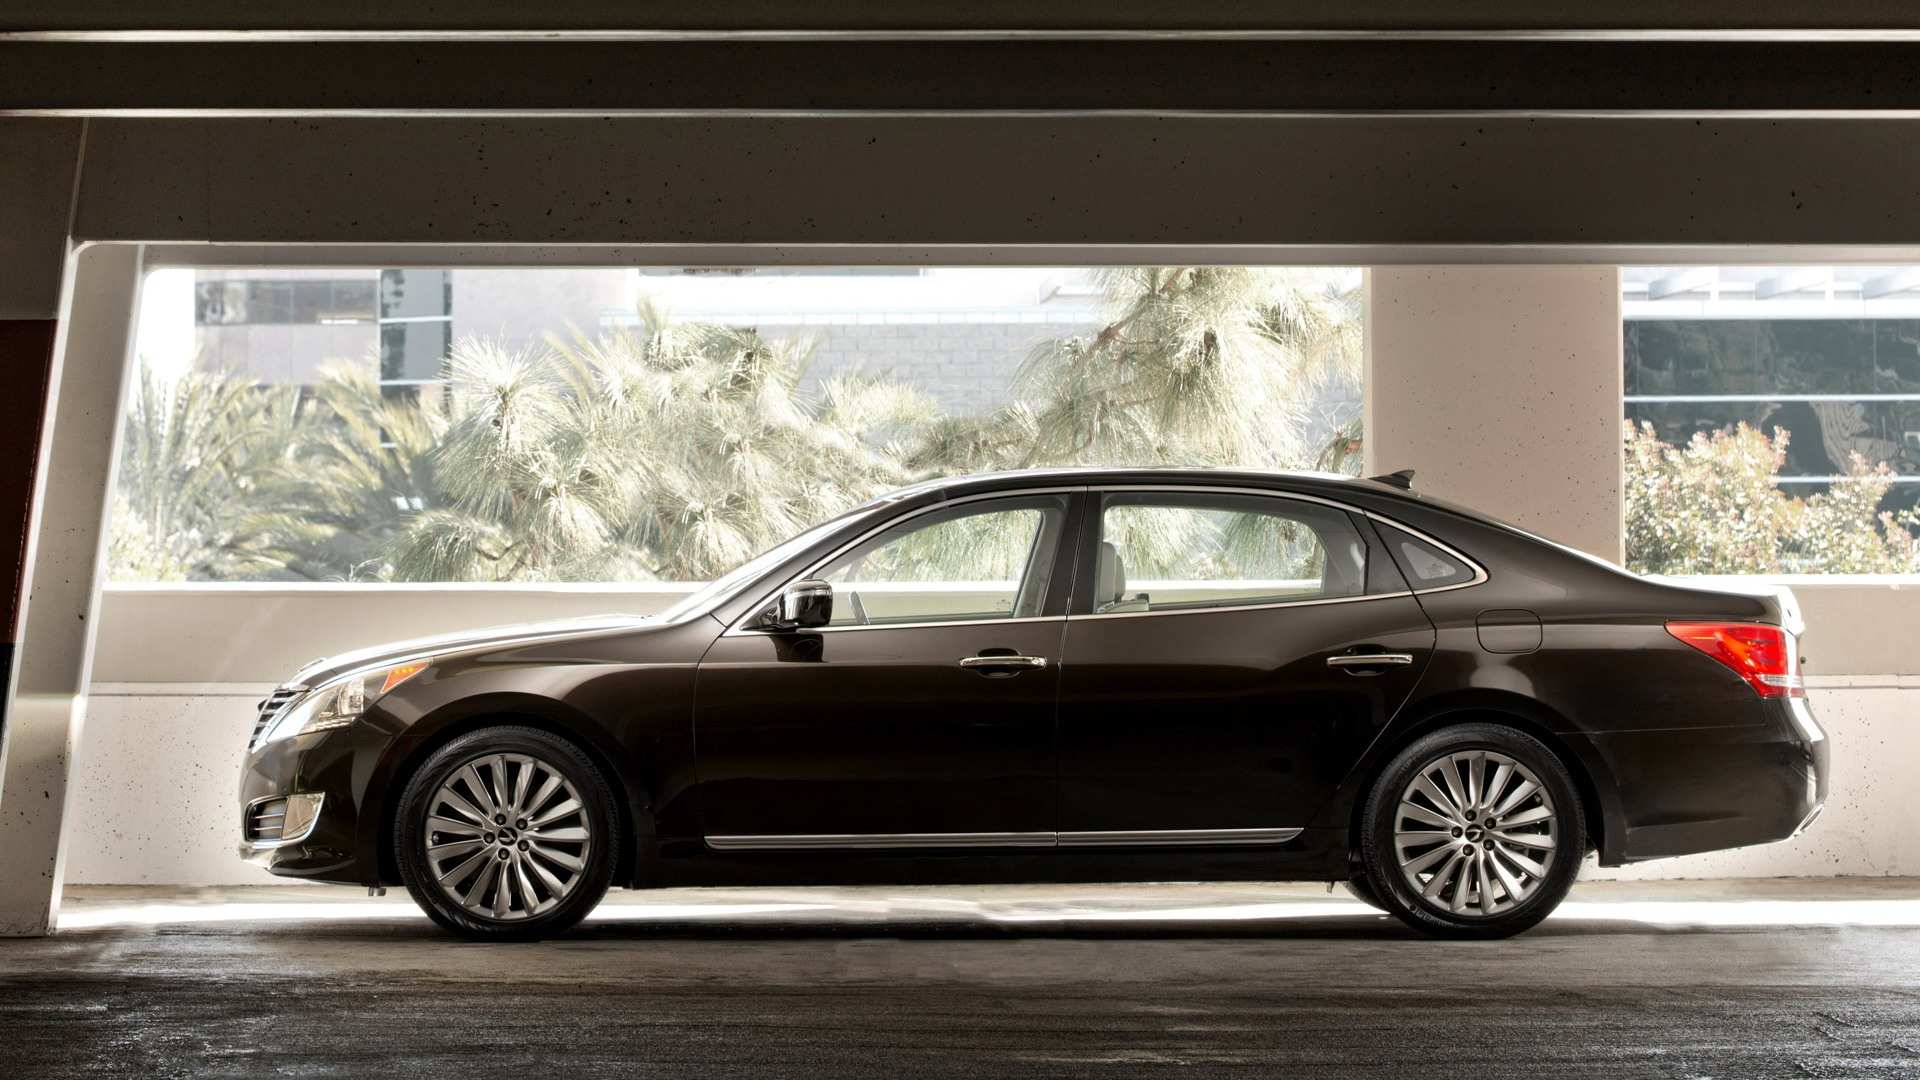 30 Best Review 2020 Hyundai Equus Ultimate Specs and Review by 2020 Hyundai Equus Ultimate